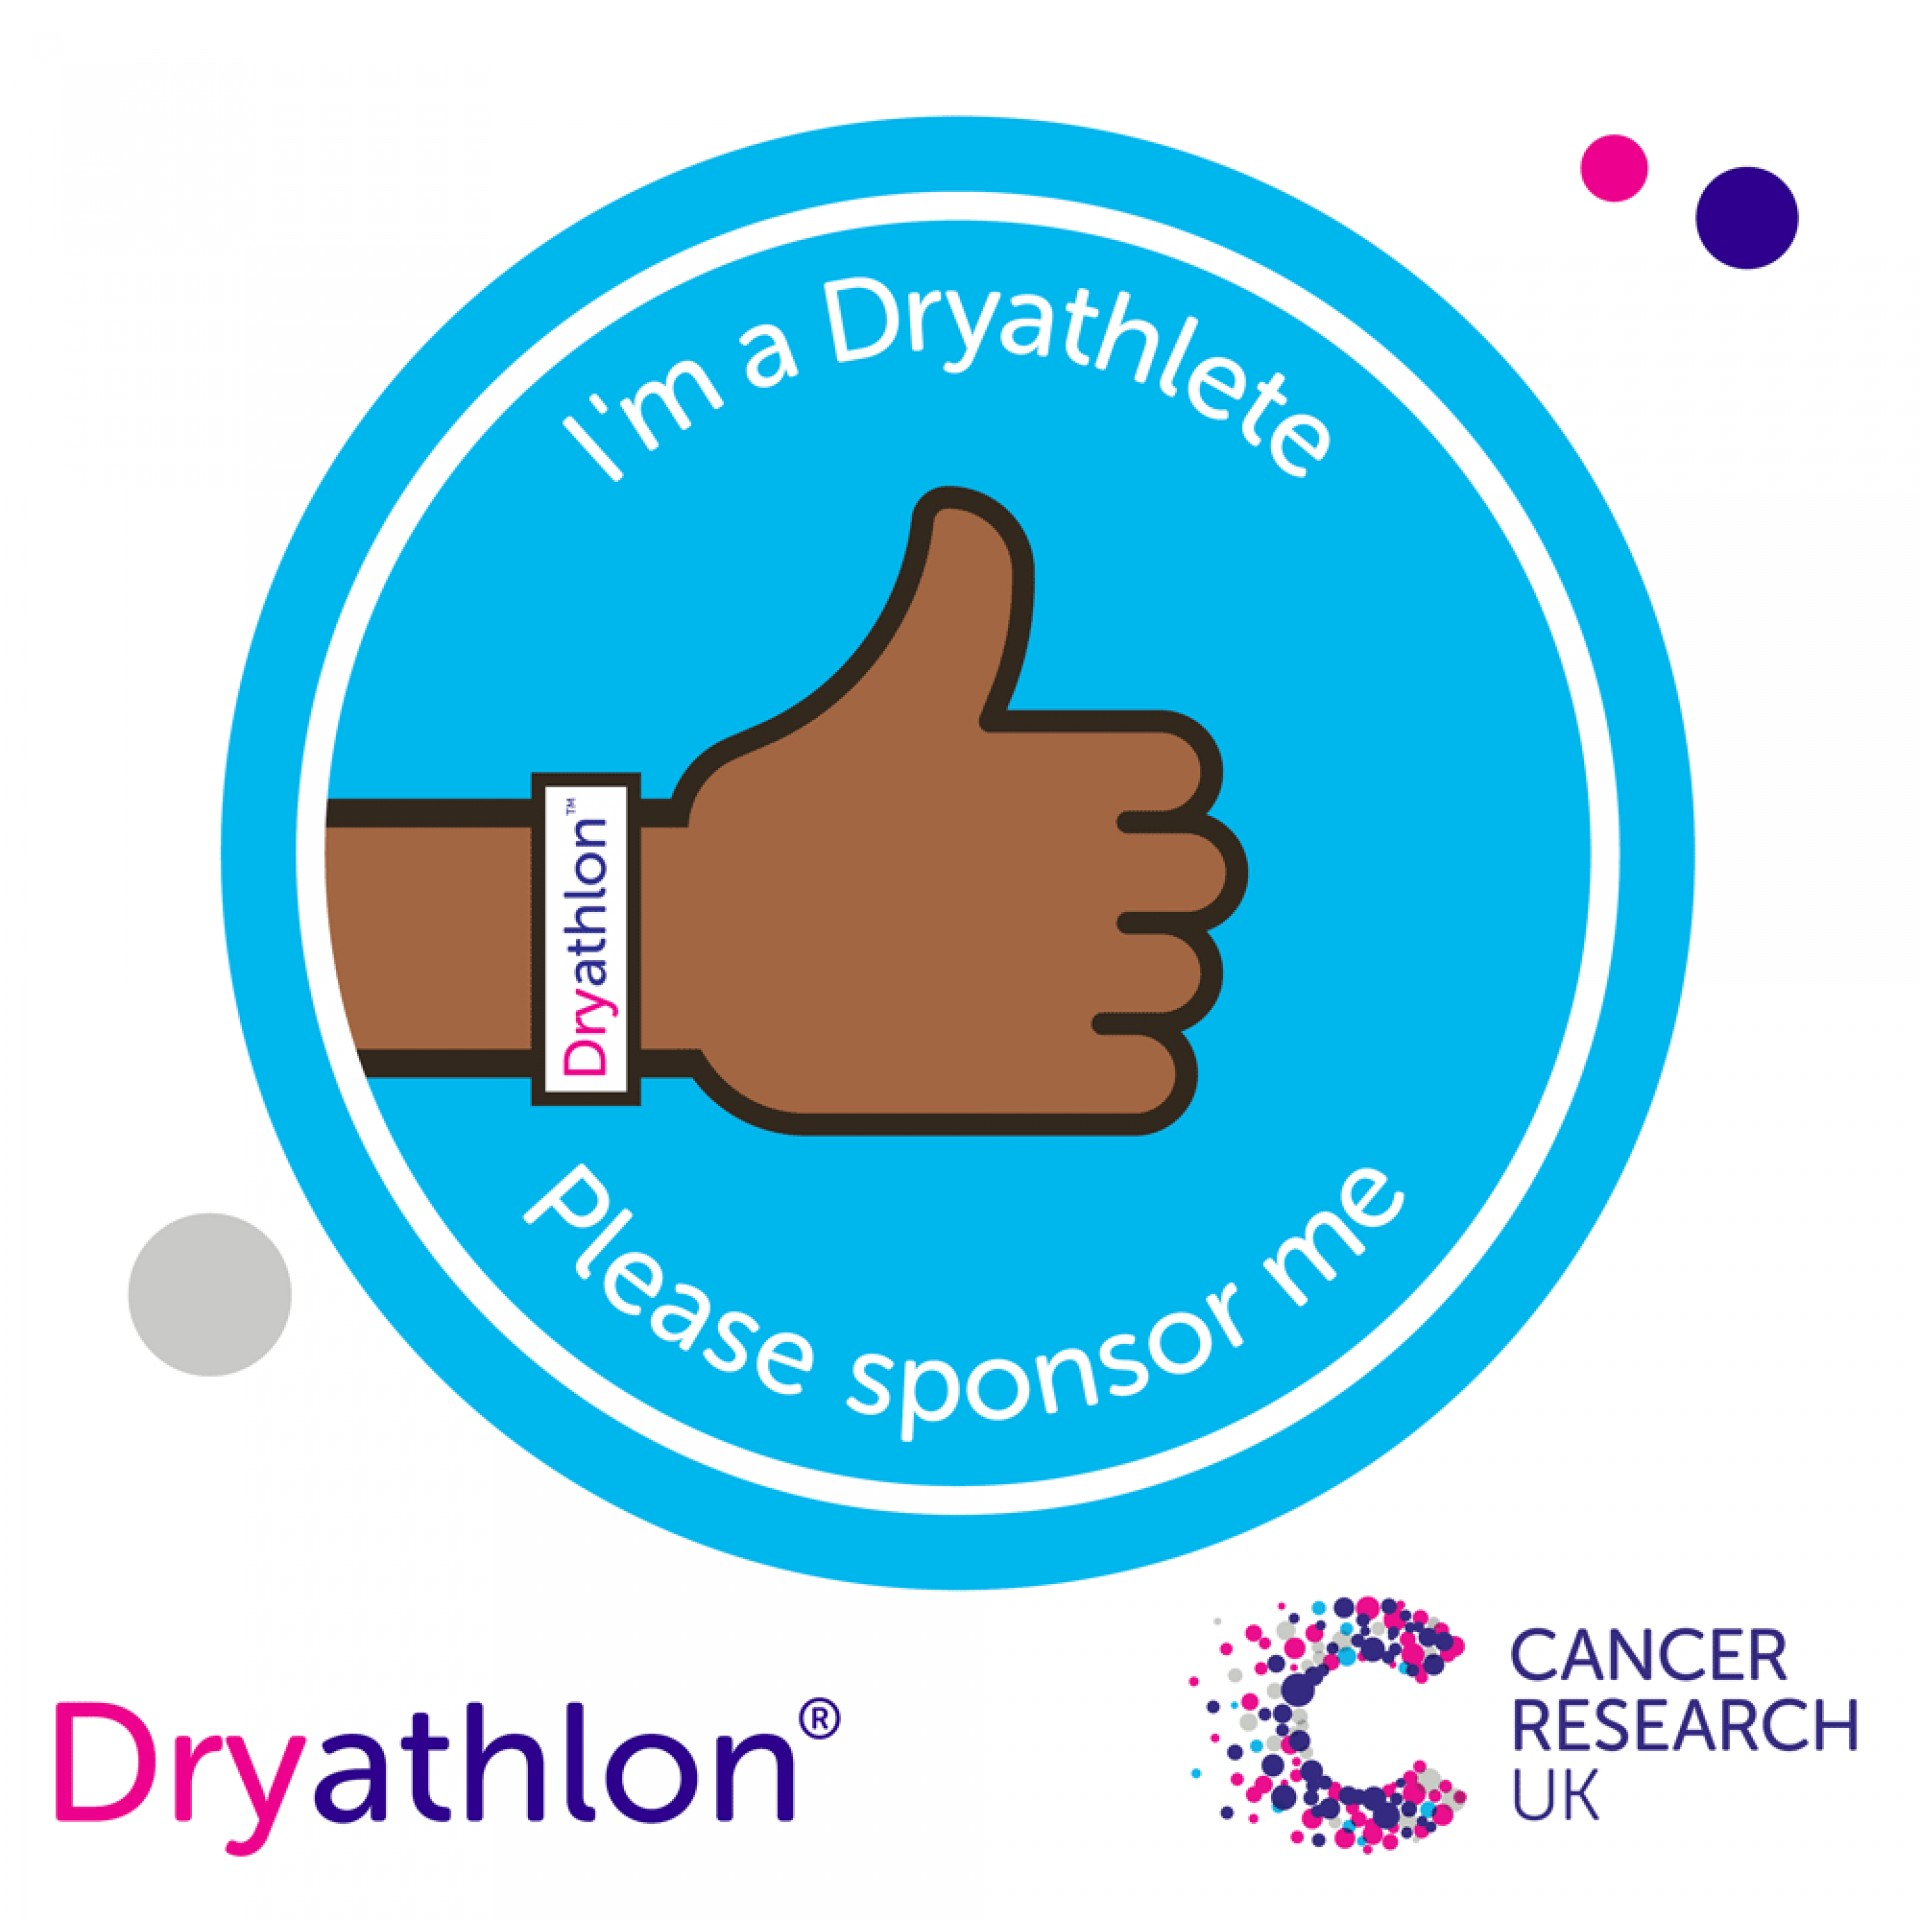 013 Dryathlon Badges Sponsor3 Research Paper Cancer Topic Archaicawful Ideas Breast 1920